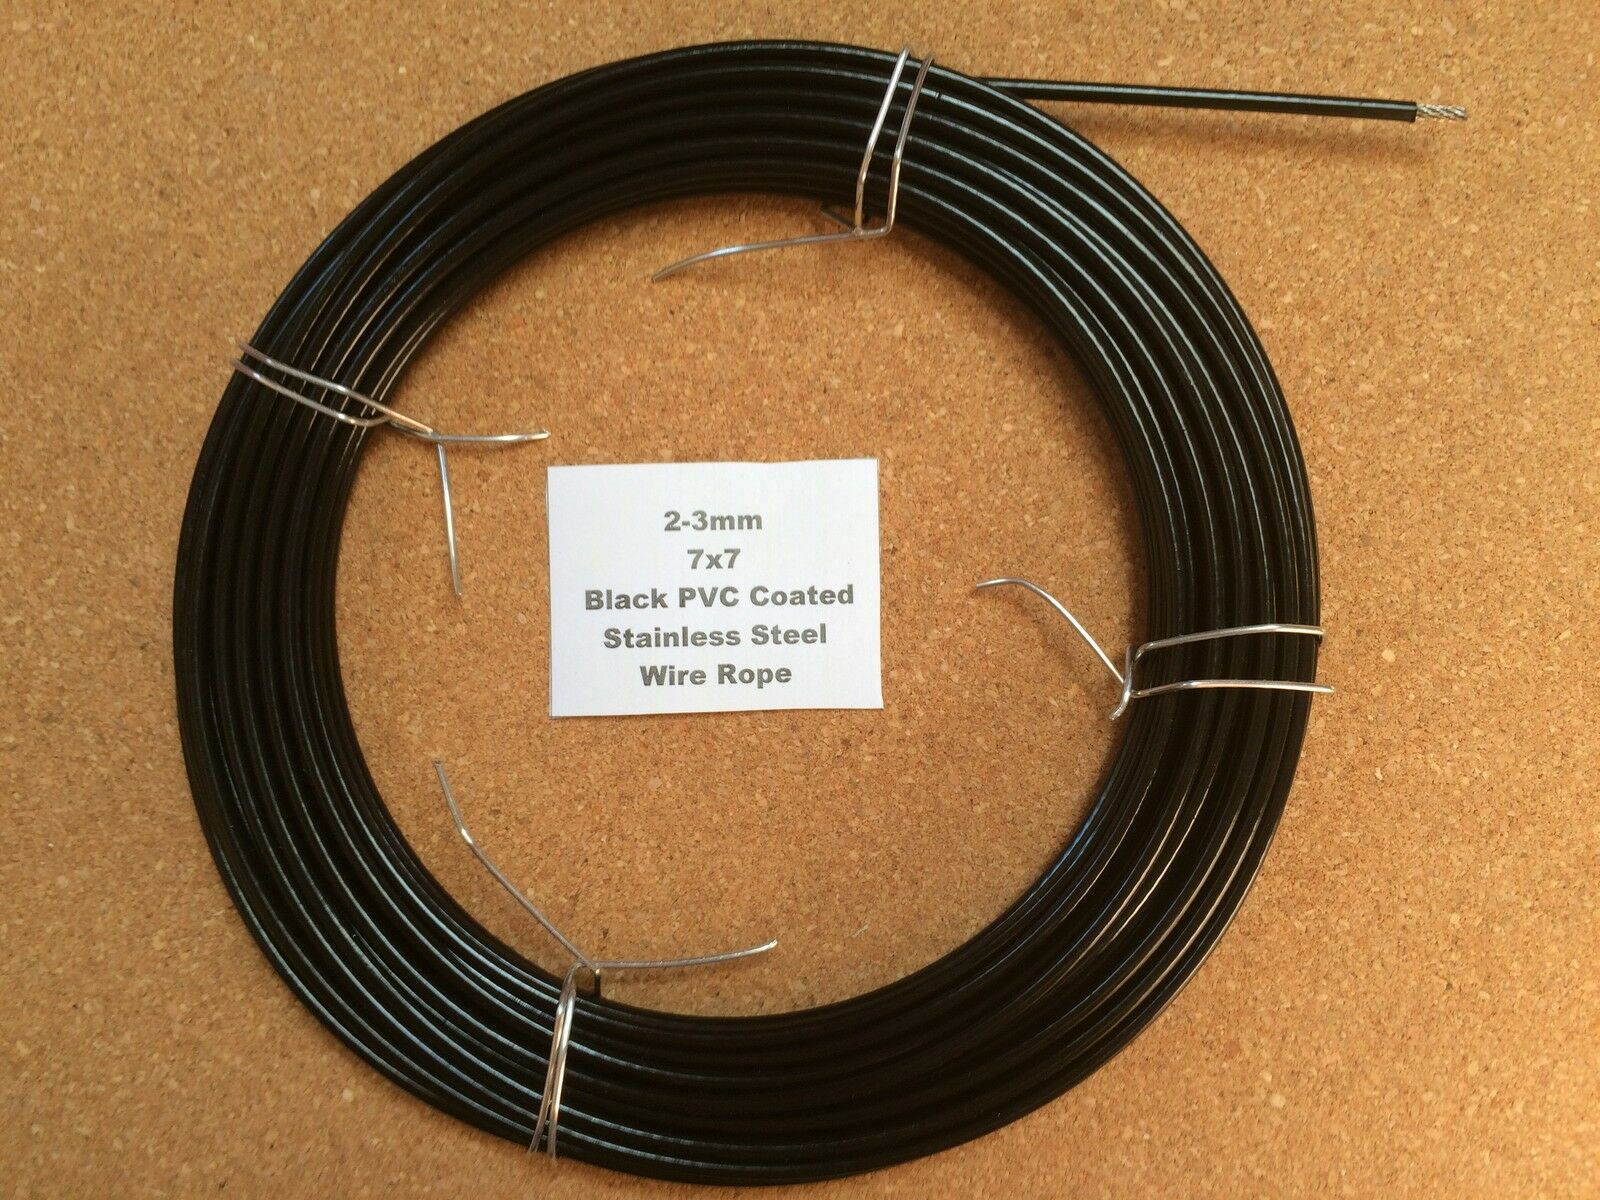 2-3mm X 10m Black PVC Coated Stainless Steel Wire Rope 7/7 18/8 304 ...